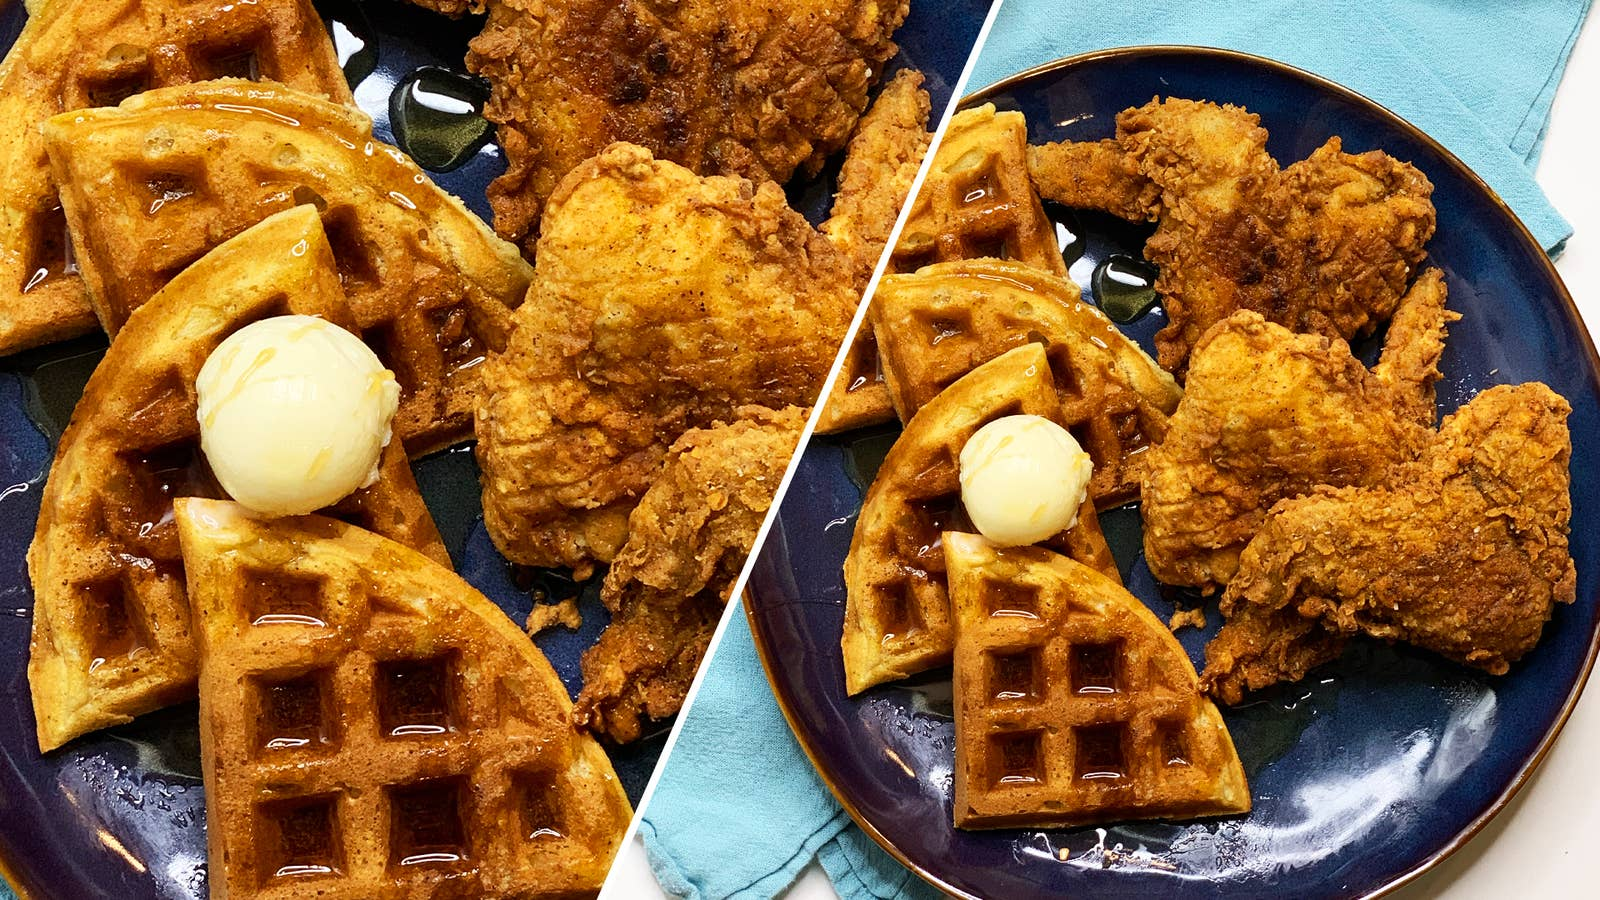 Fried Chicken And Waffles As Made By Breana Jackson